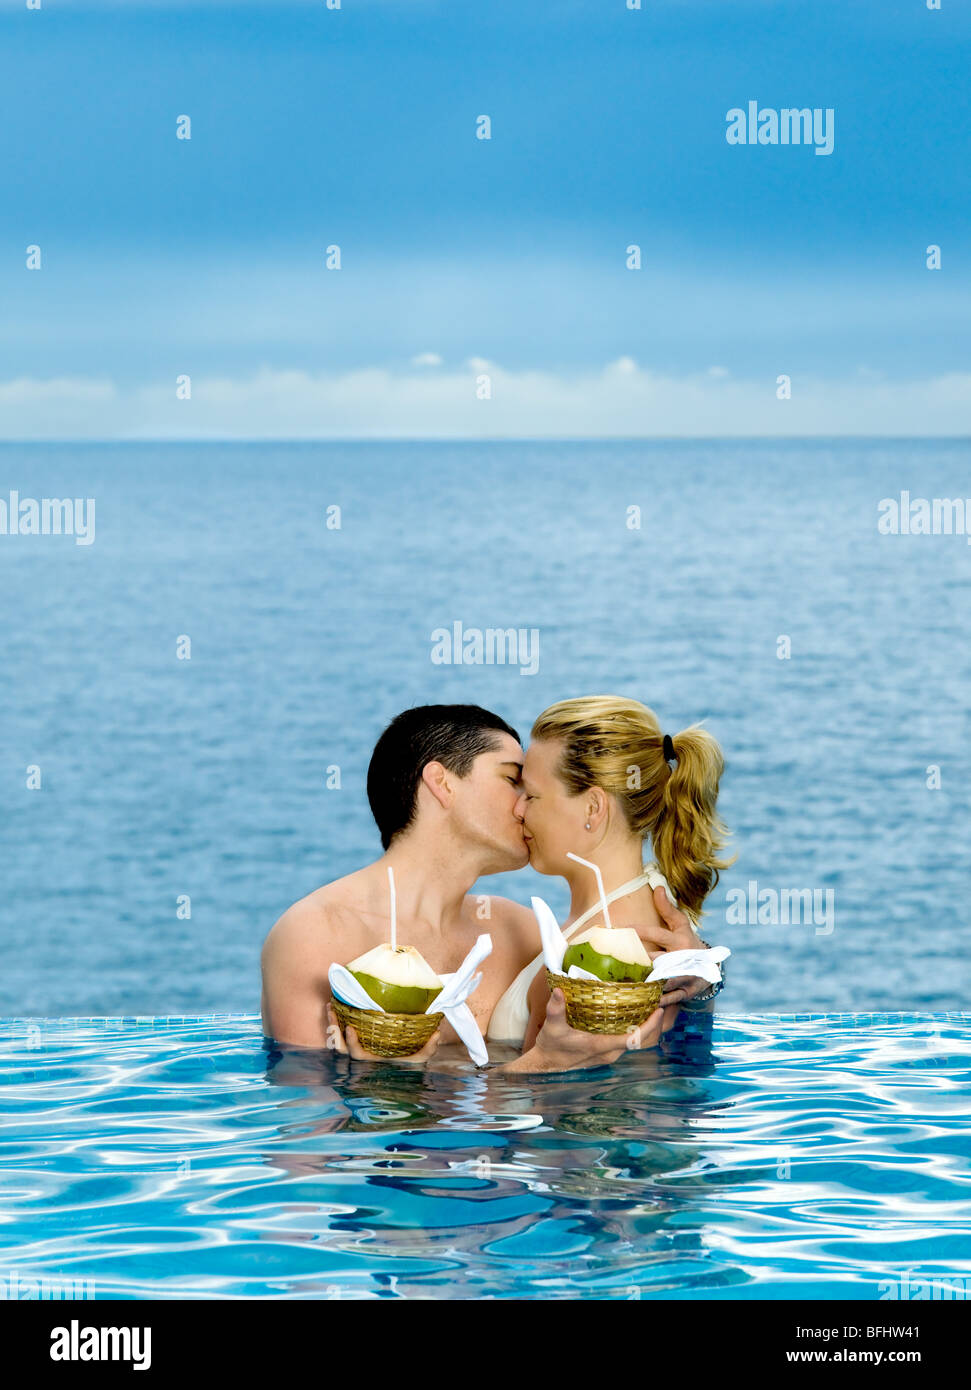 beautiful caucasian couple enjoying their vacation in a beautiful swimming pool by the seaside - Stock Image